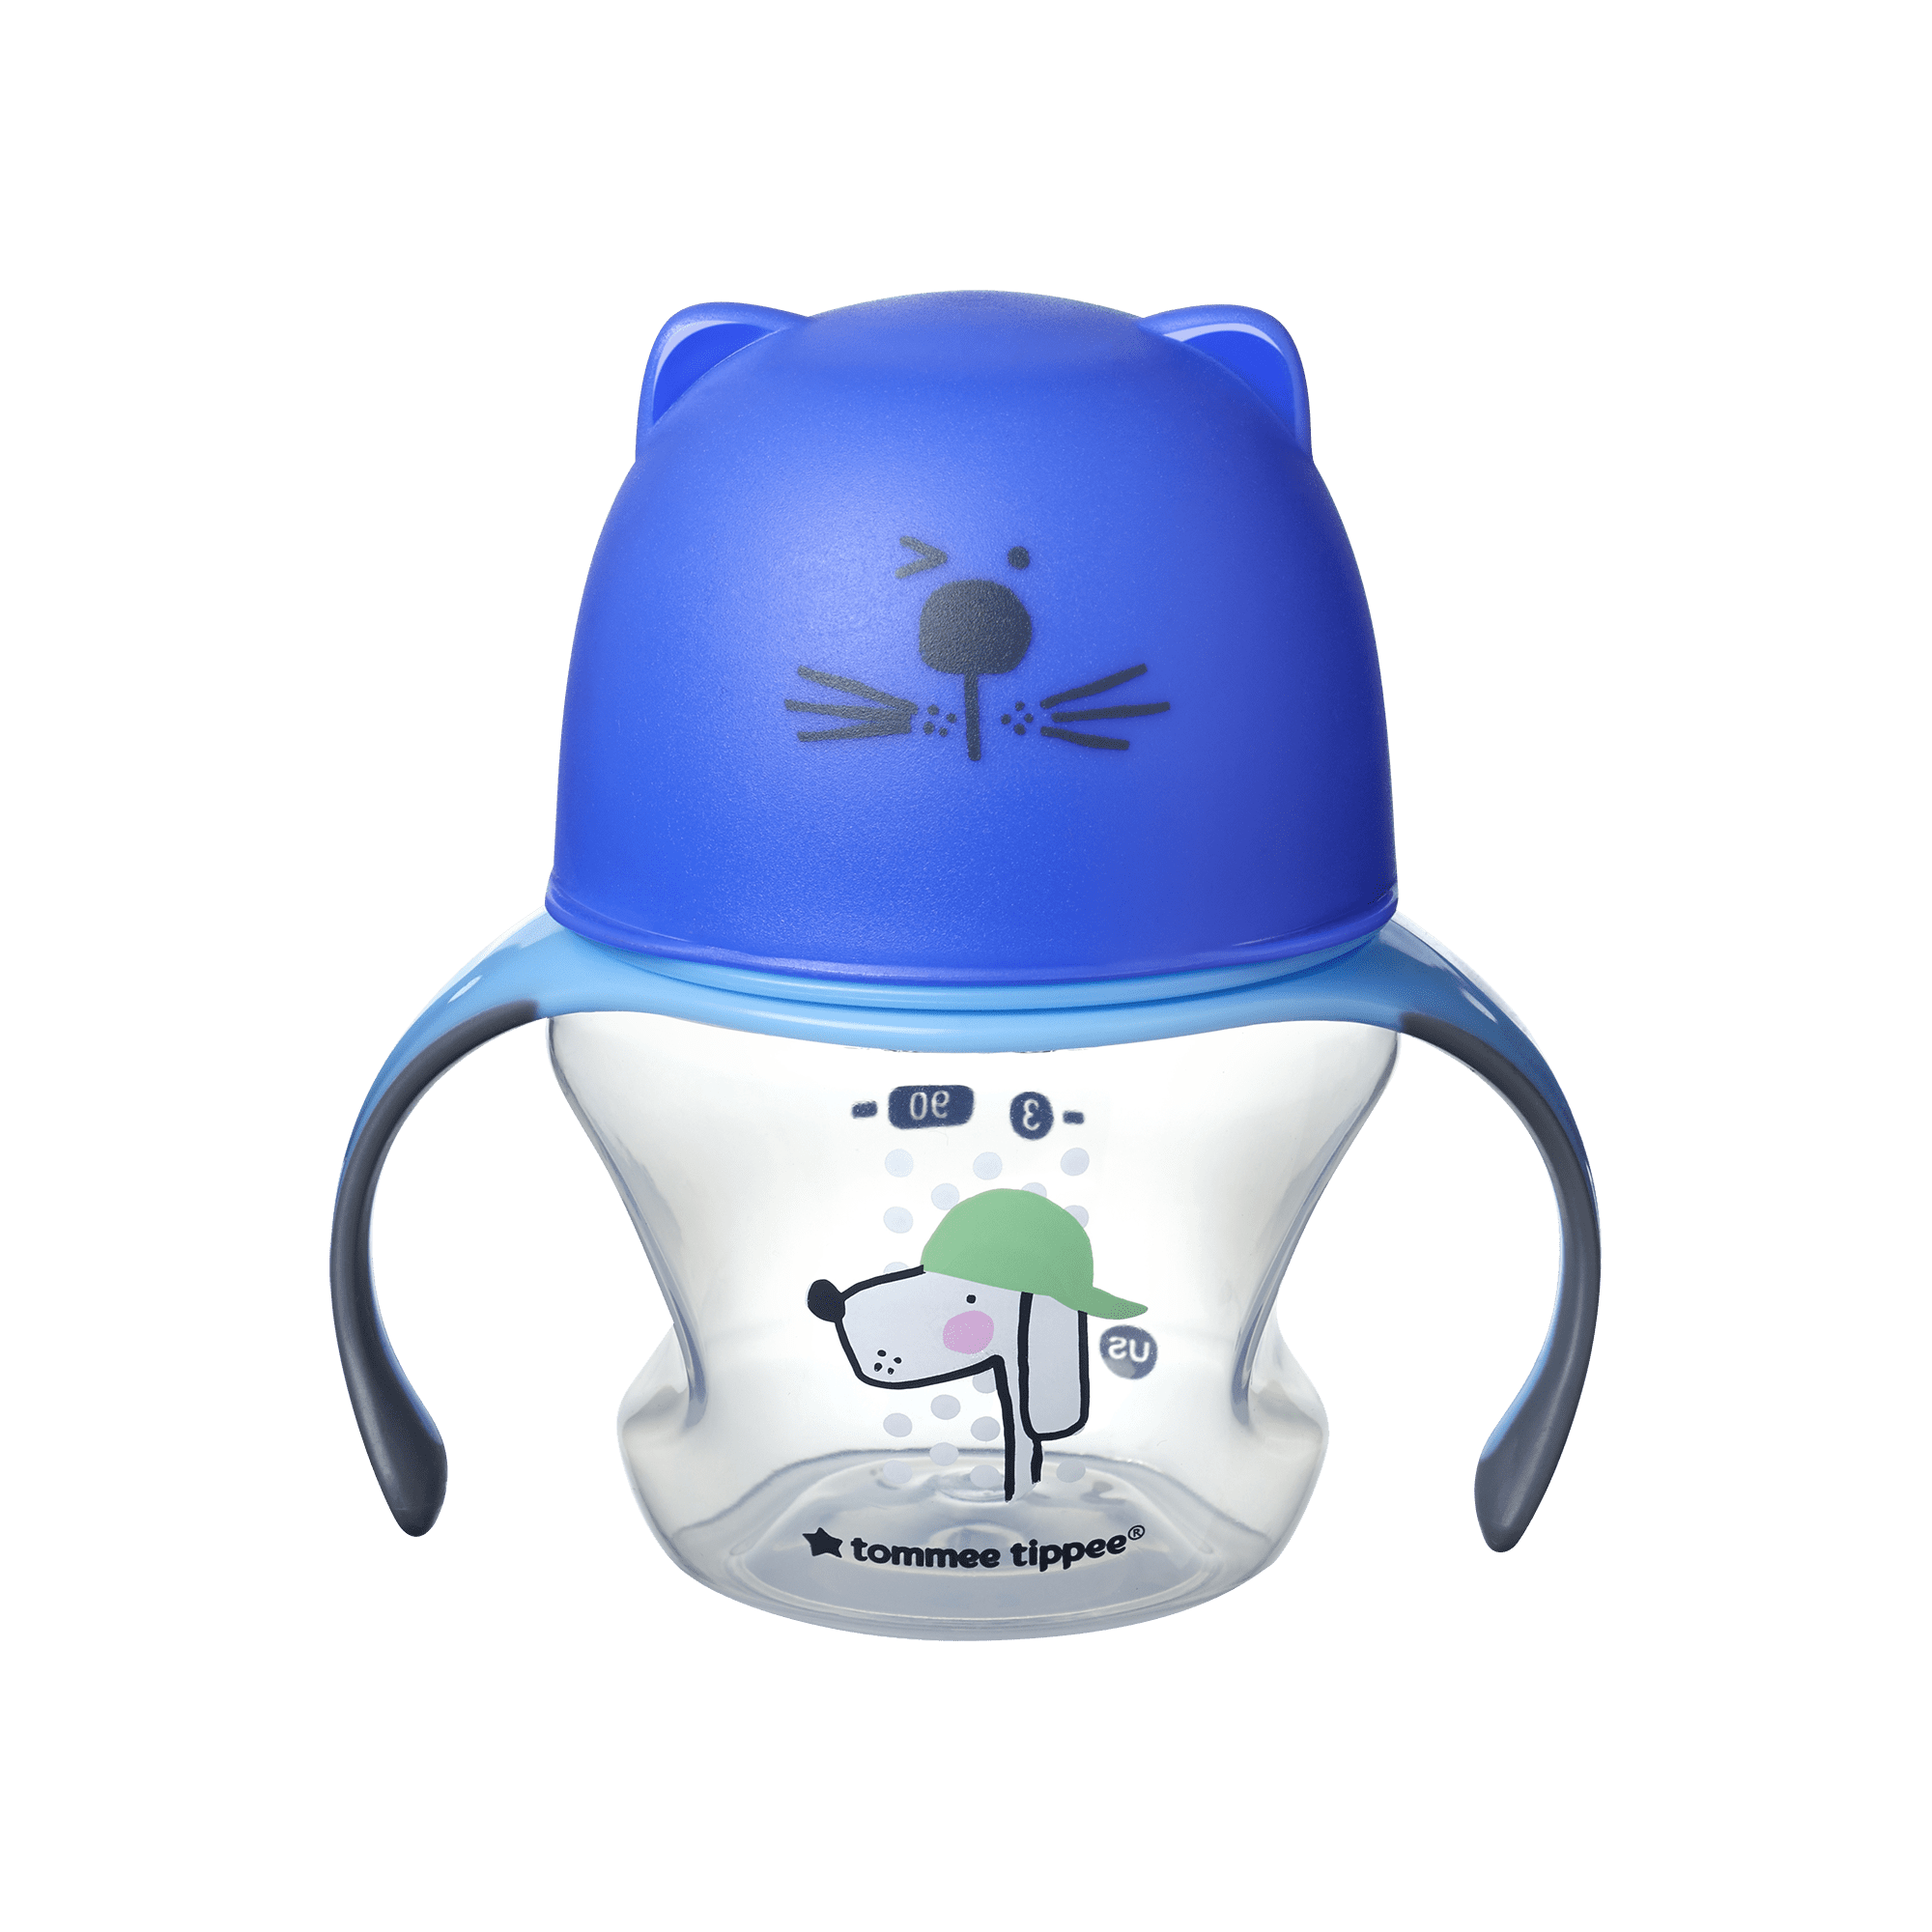 Tommee Tippee doux sippee Transition Cup │ Silicone Formation bec verseur//bouteille │ 300 ml